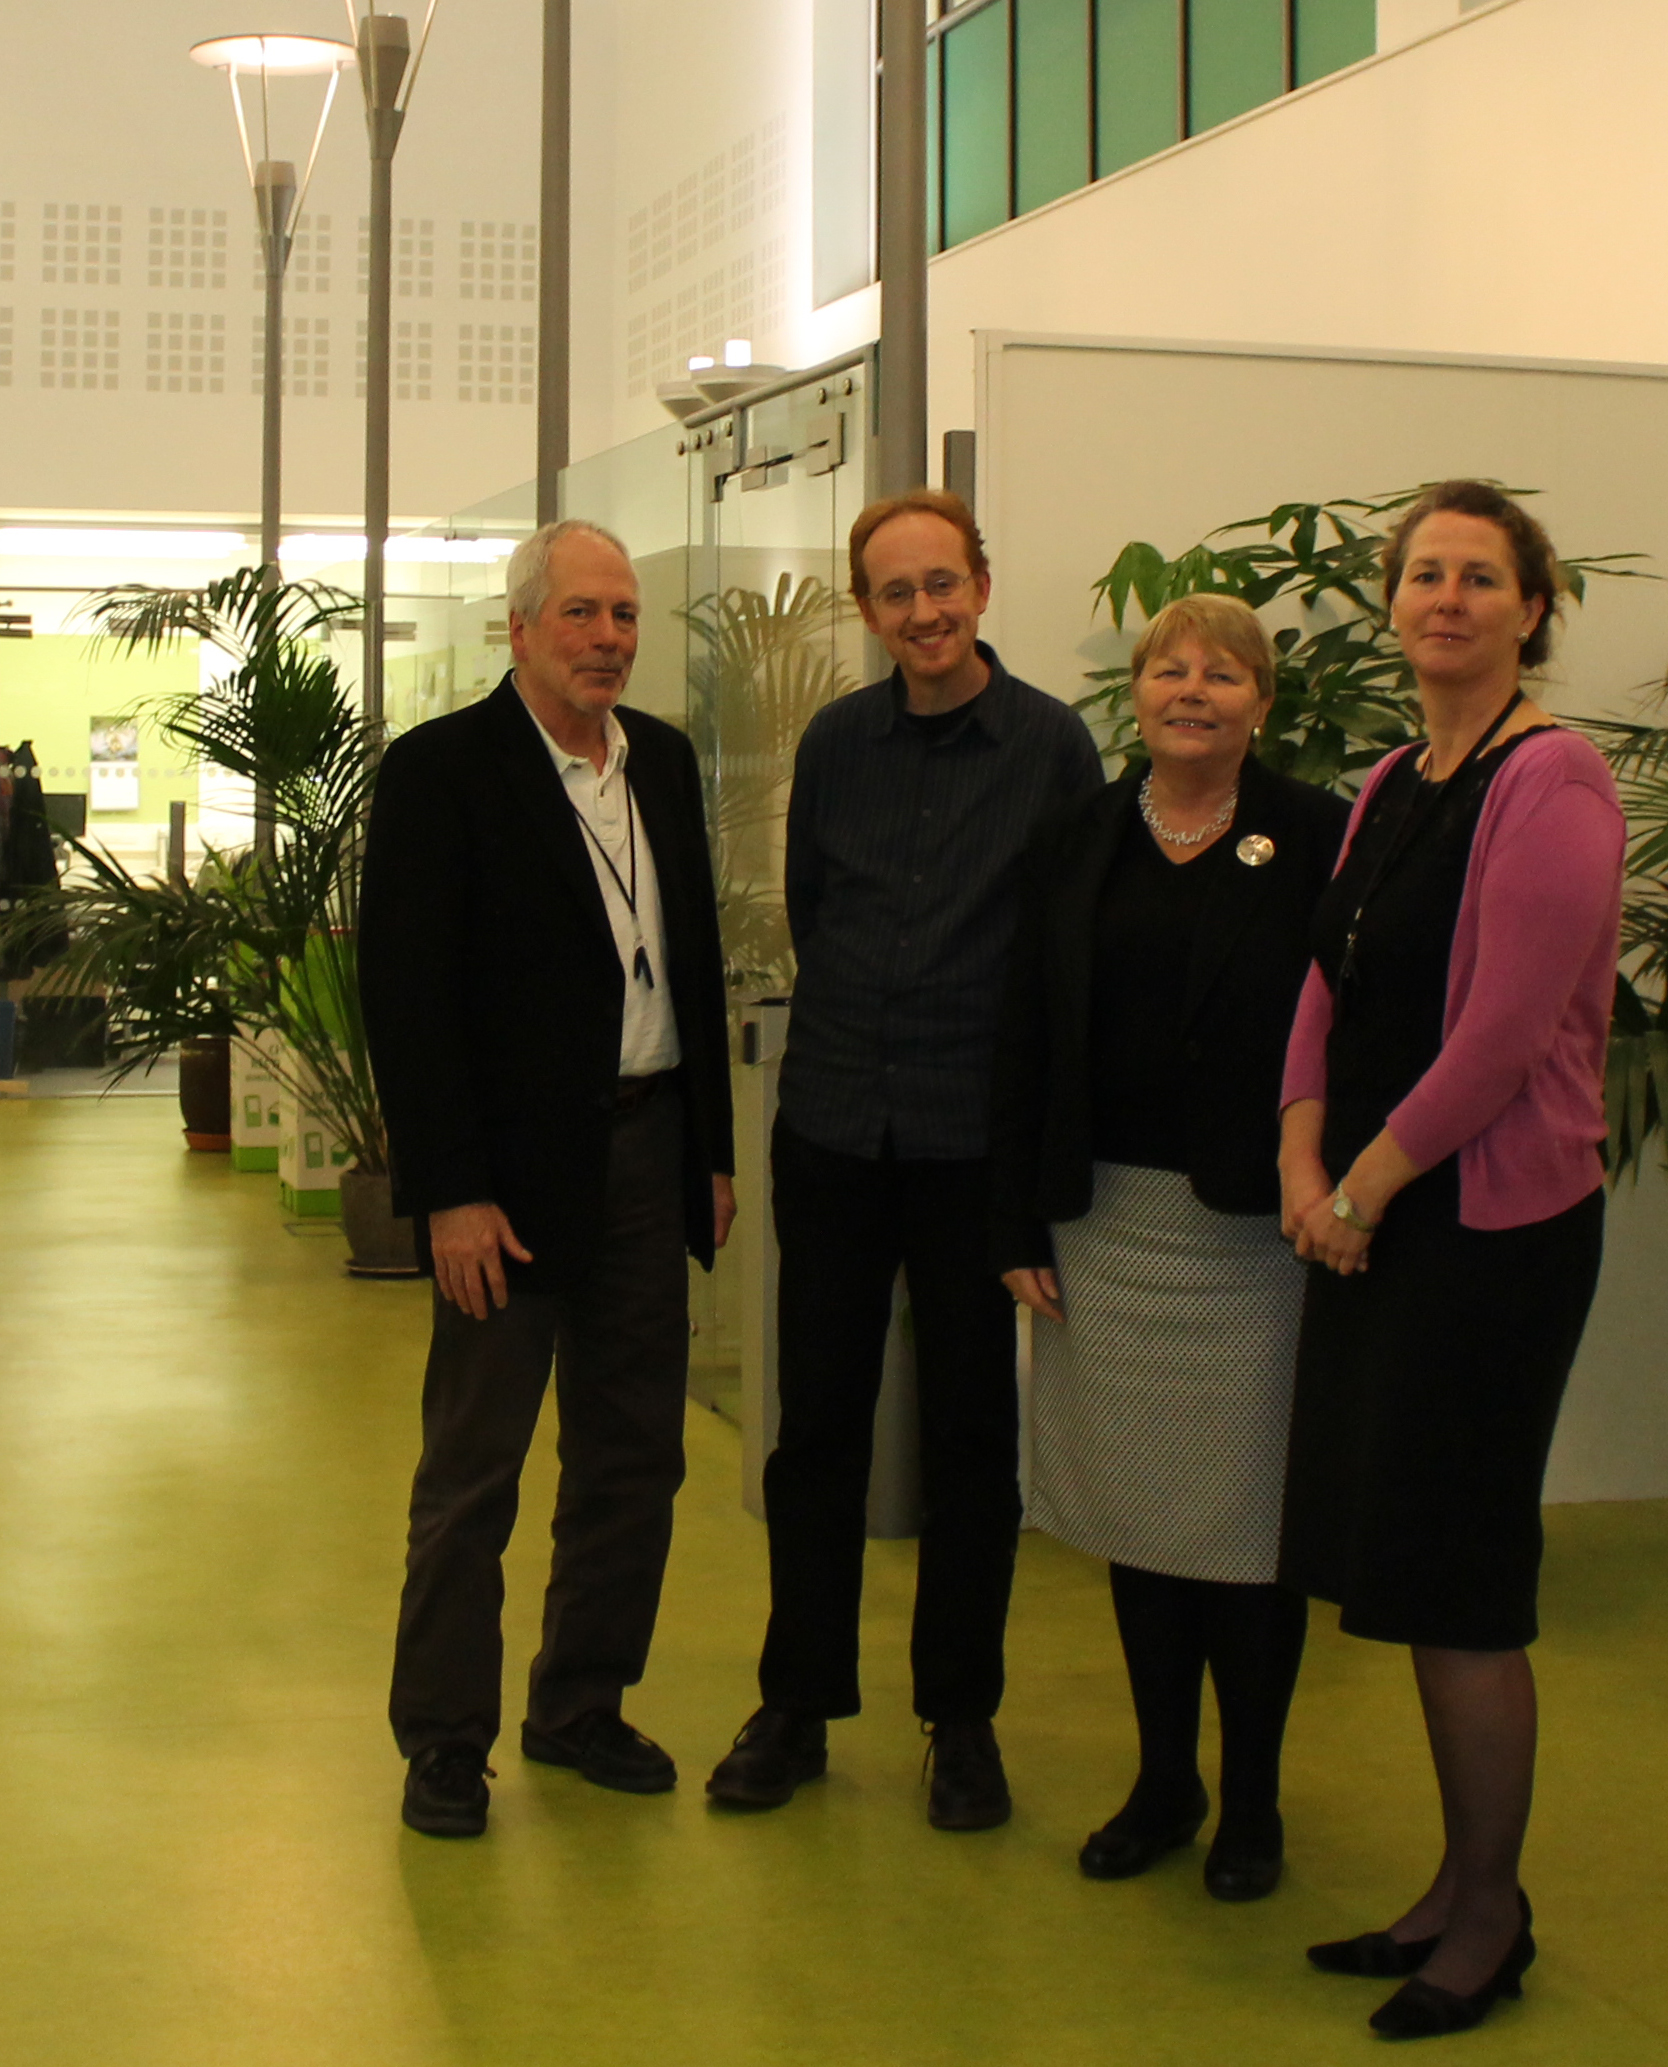 Baroness Randerson (2nd right) with CEH Head of Site at Bangor, Prof Bridget Emmett (right), and CEH senior scientists Drs Jack Cosby and Chris Evans